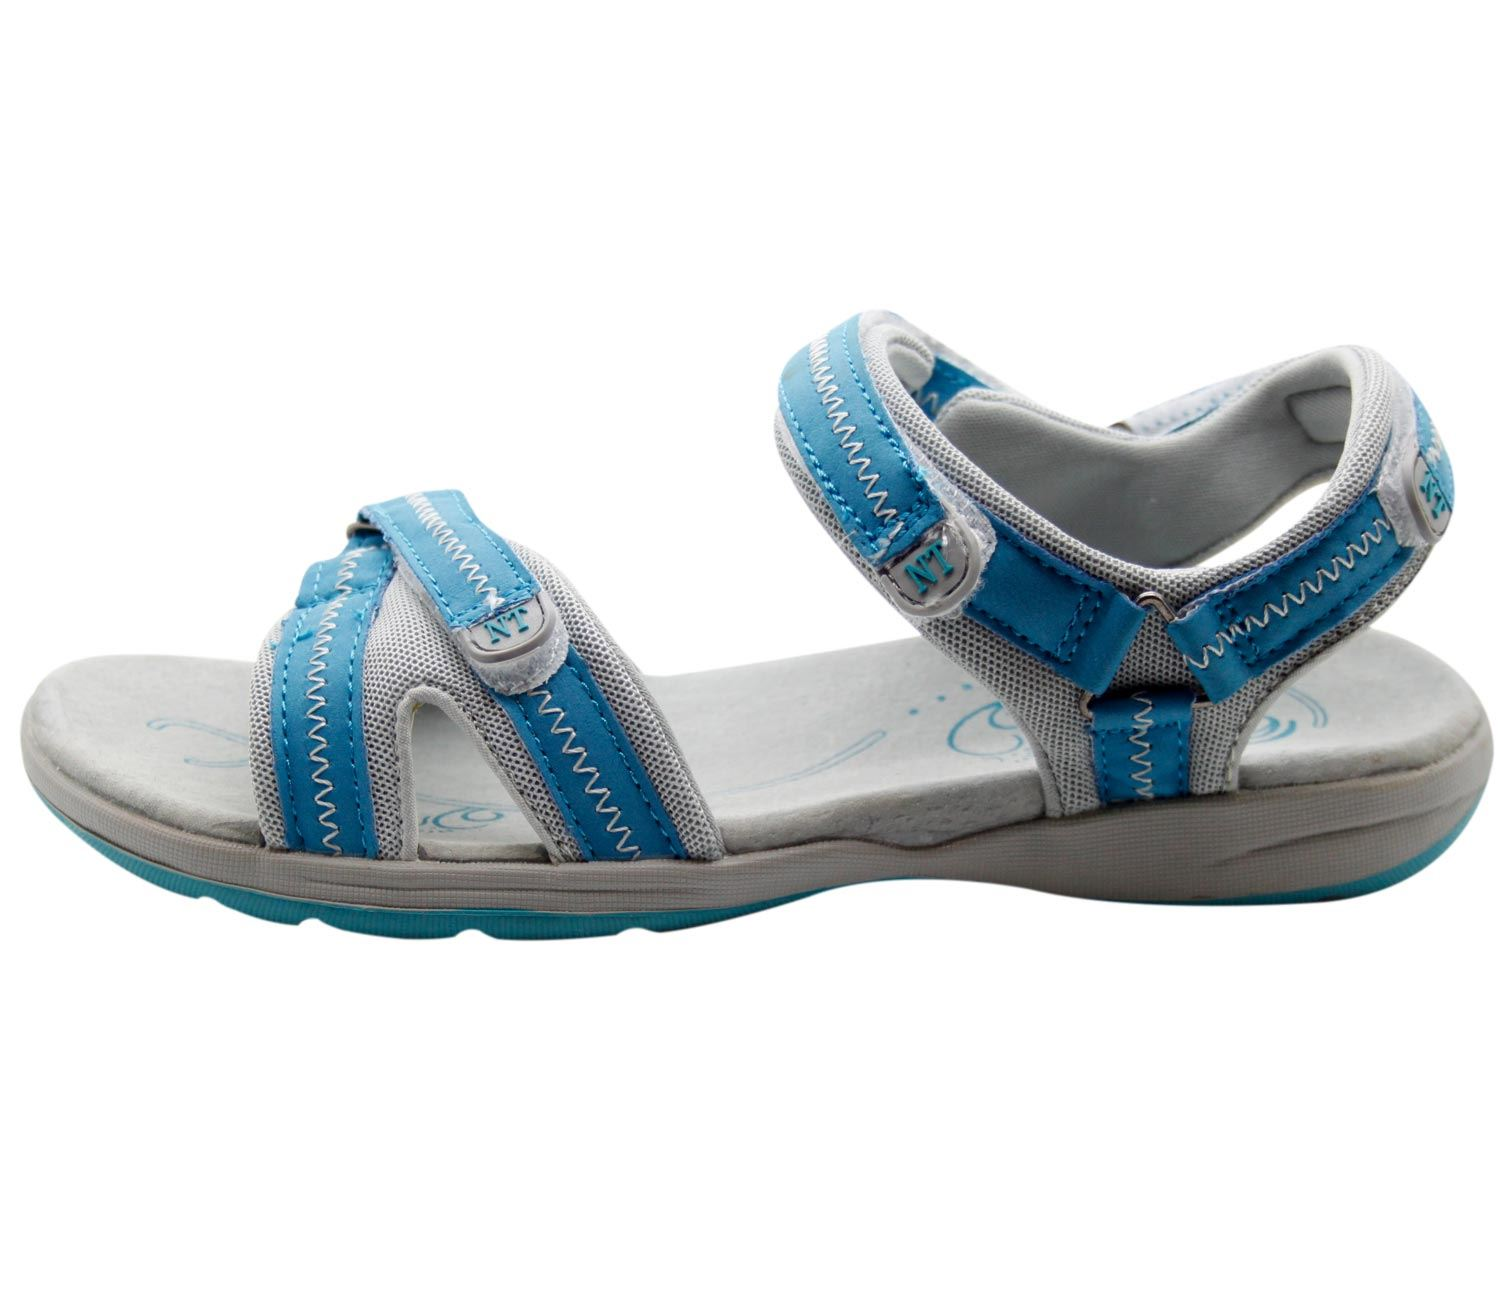 6cf5dab4343f New Ladies Northwest Territory Sports Shoes Women Outdoor Mules ...